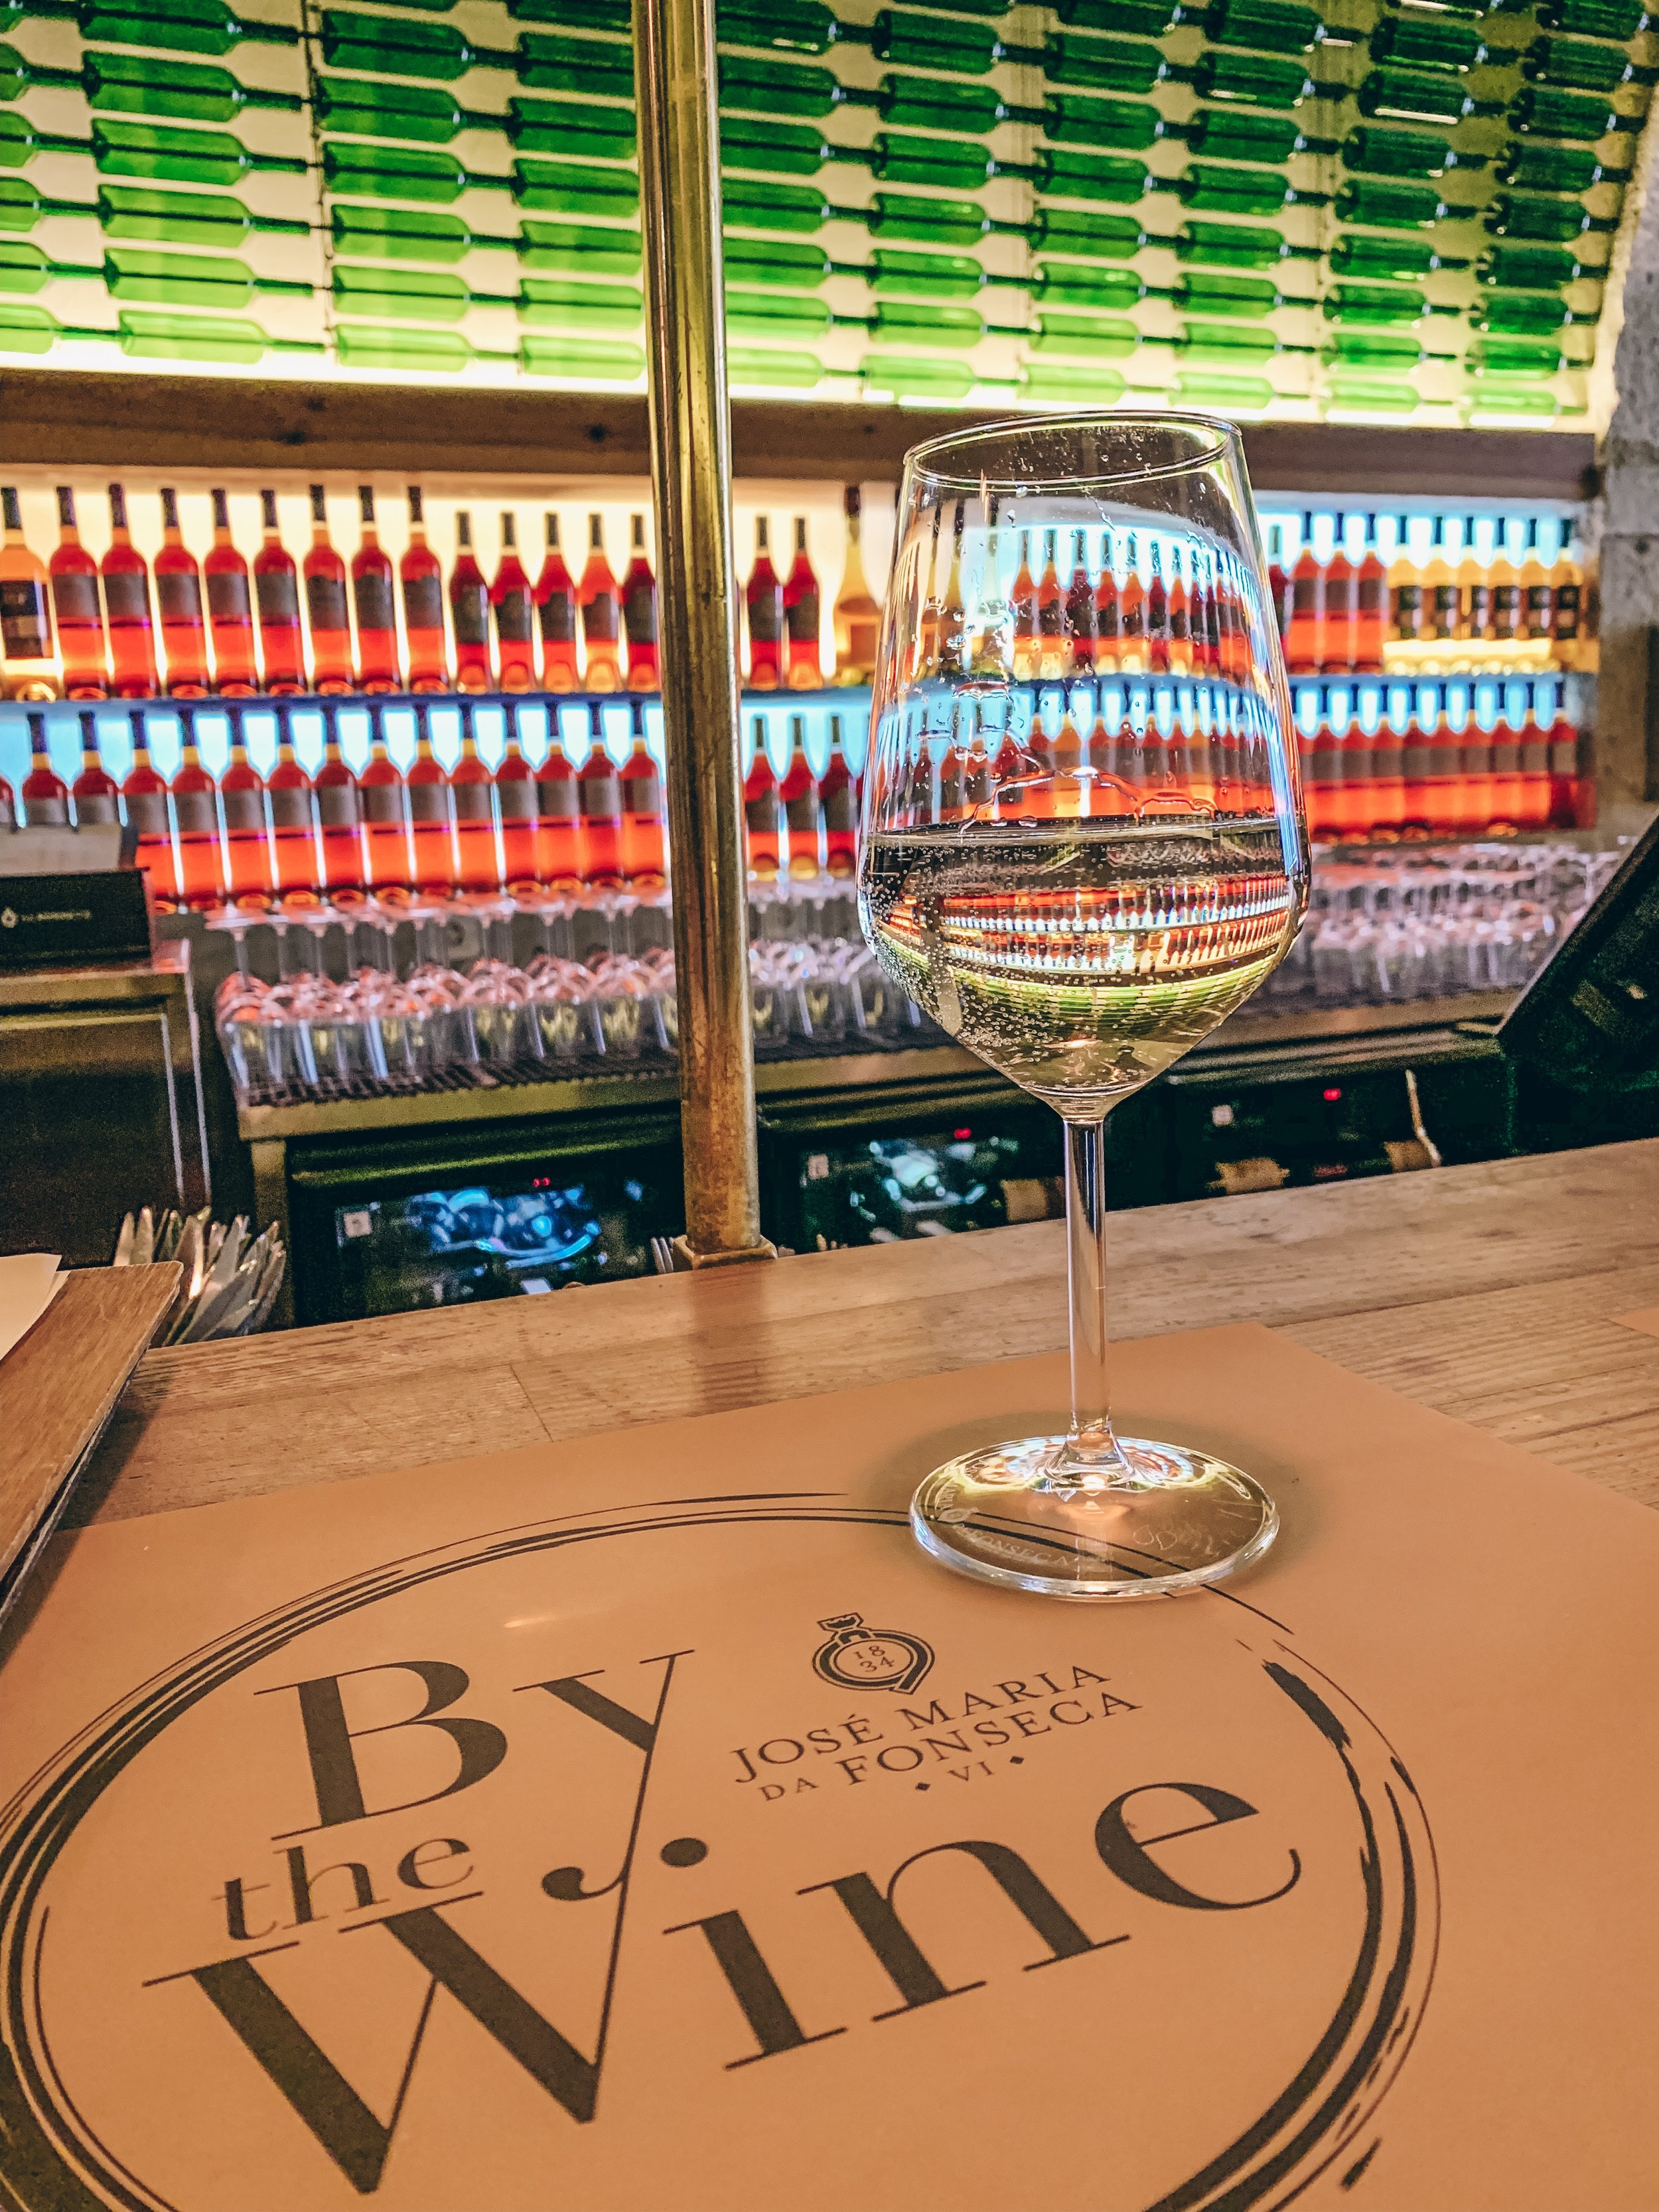 By The Wine, a beautiful wine bar